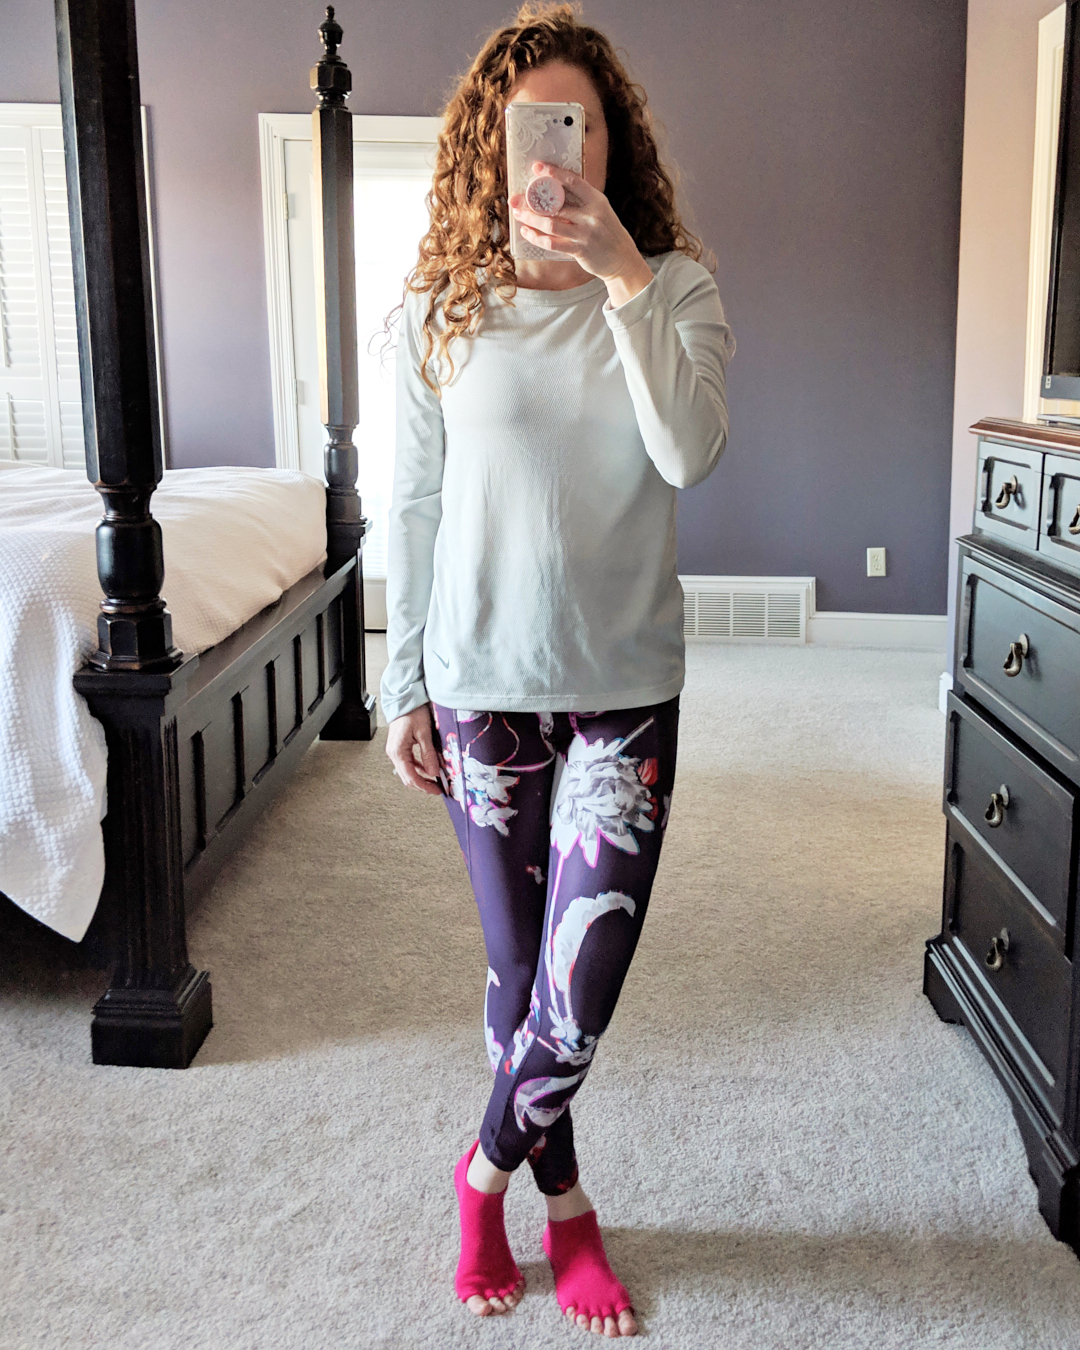 Mirror shot of Jamie in floral powervita leggings and nike top with pink toesox